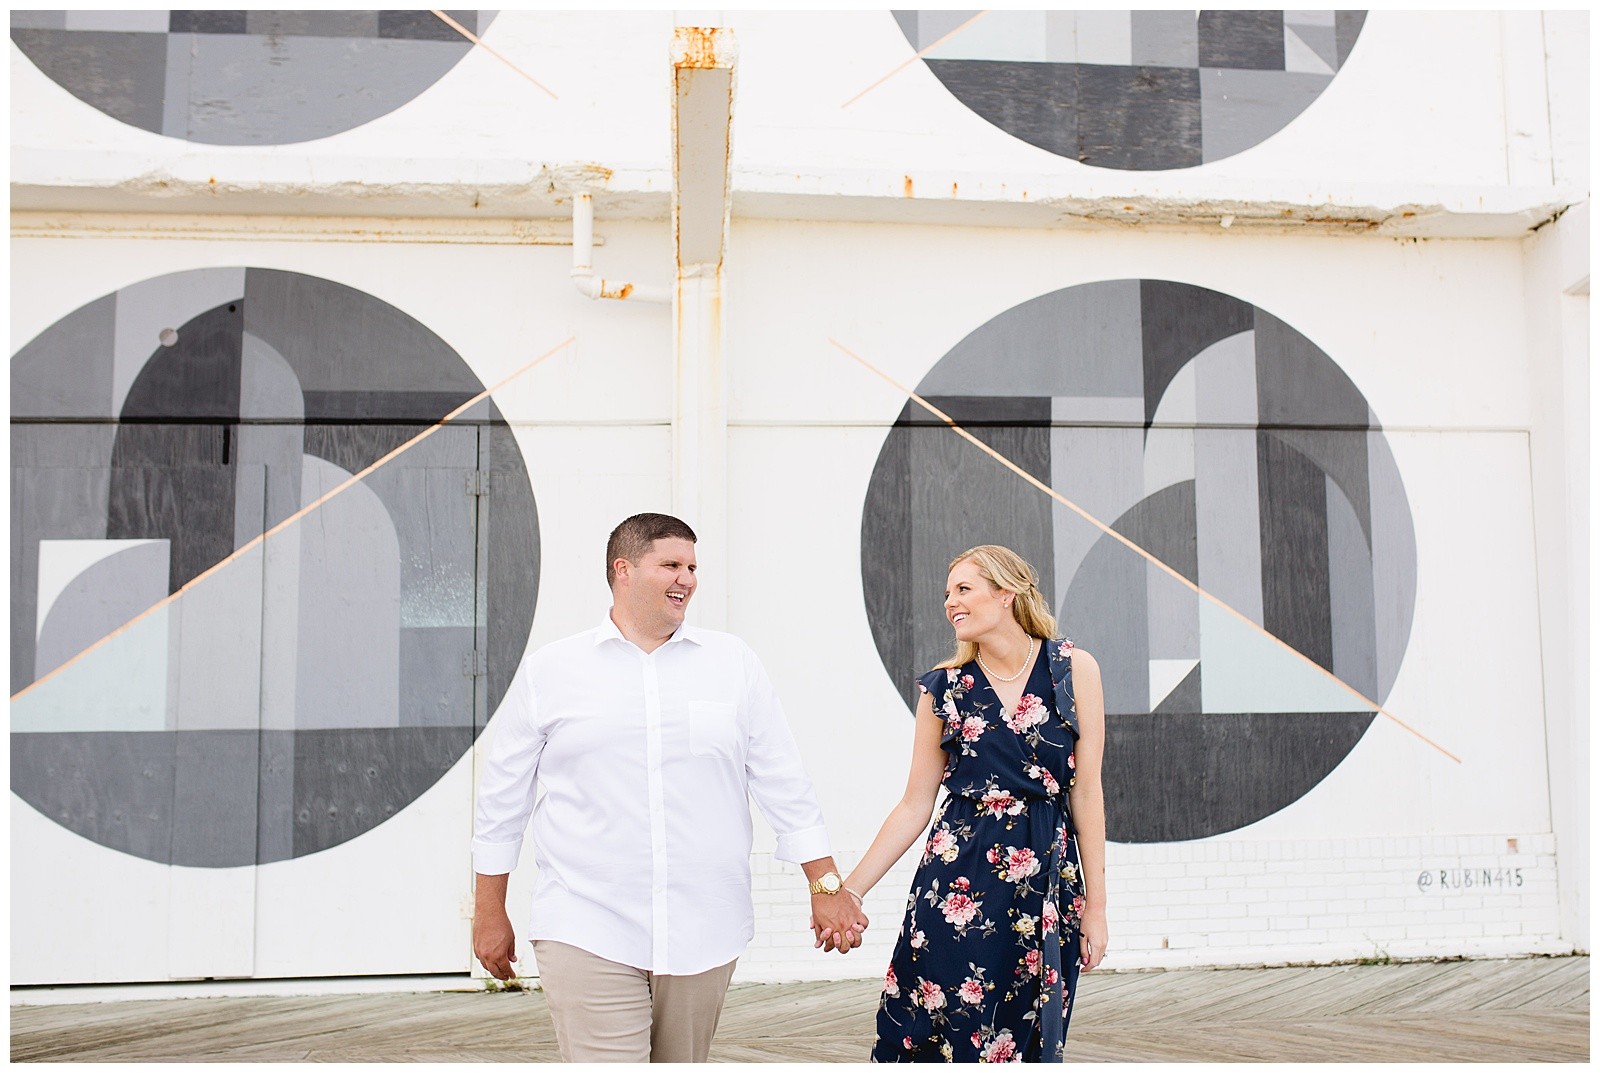 asbury park new jersey wedding photography new jersey wedding photographer asbury park engagement session beach engagement session boardwalk engagement session